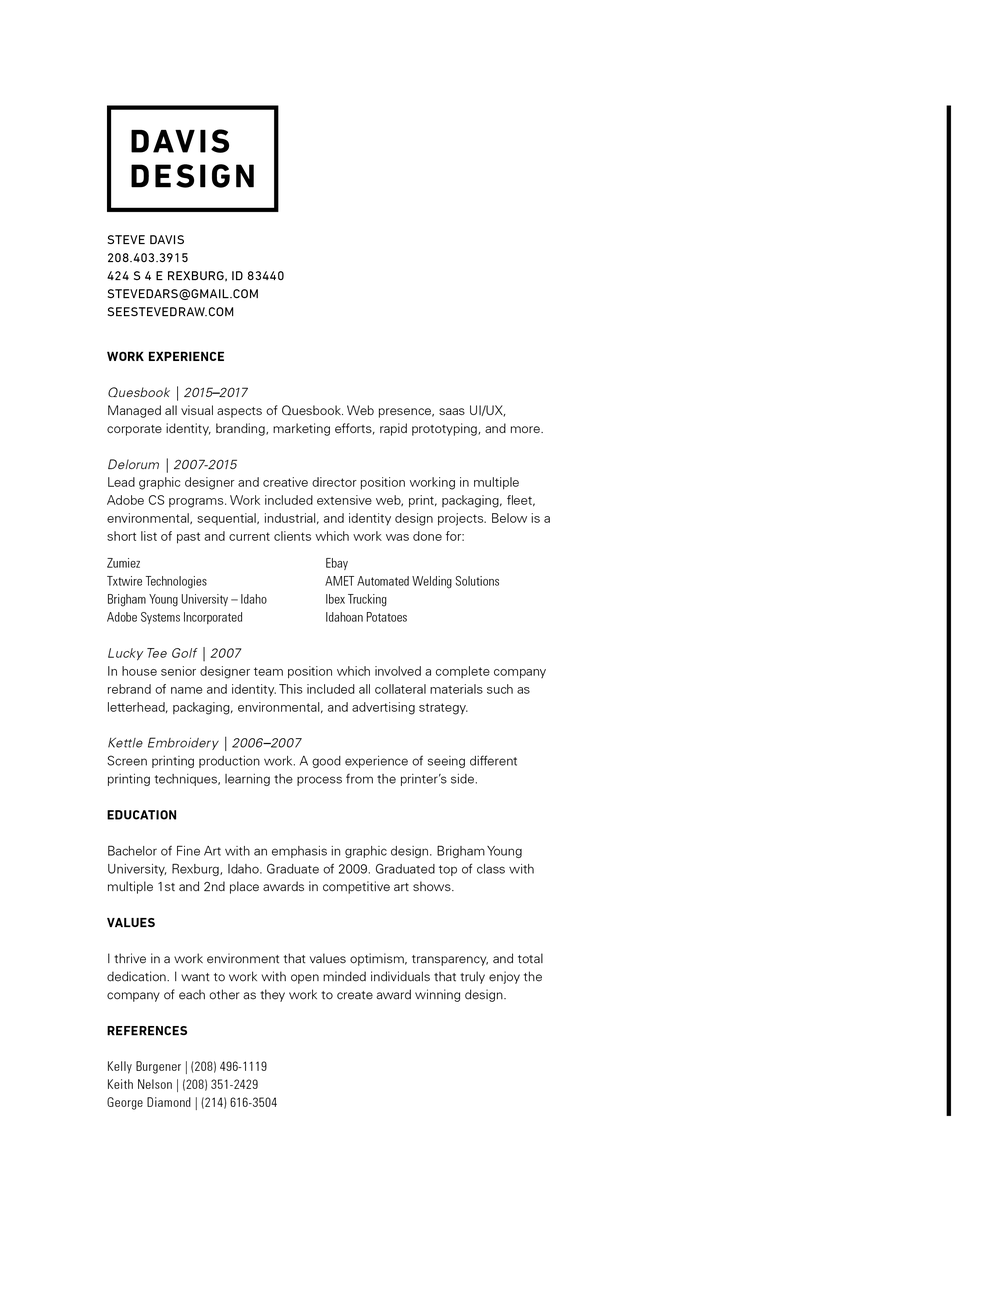 Contact Resume See Steve Draw